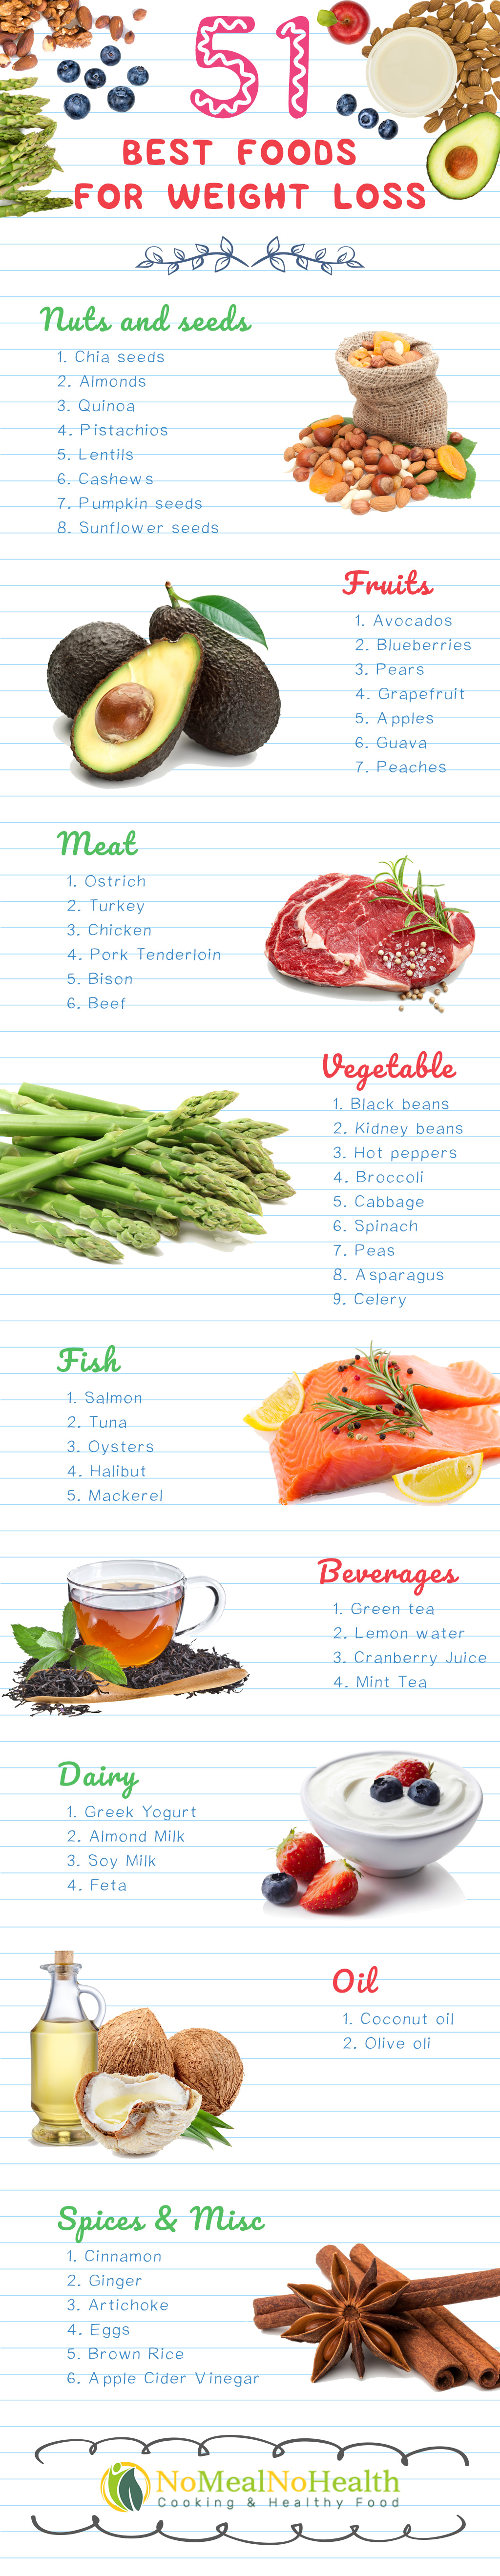 51 Healthy and Delicious Weight Loss Foods - Infographic